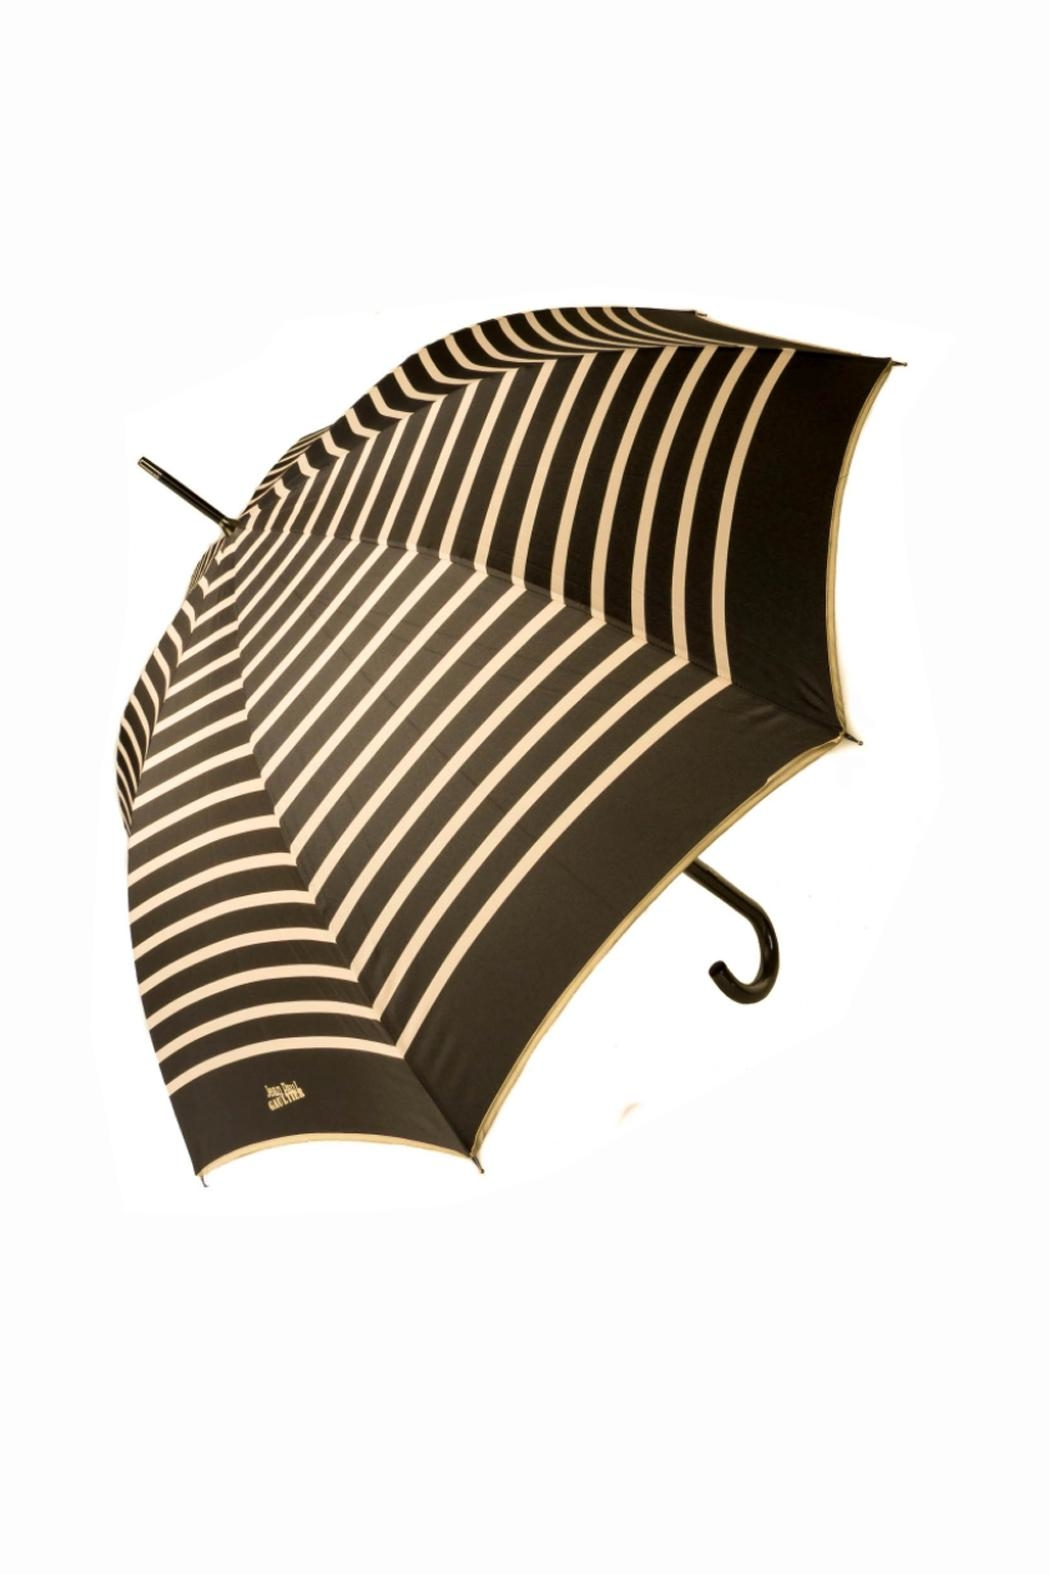 JEAN PAUL GAULTIER Stripes Gray Umbrella - Main Image